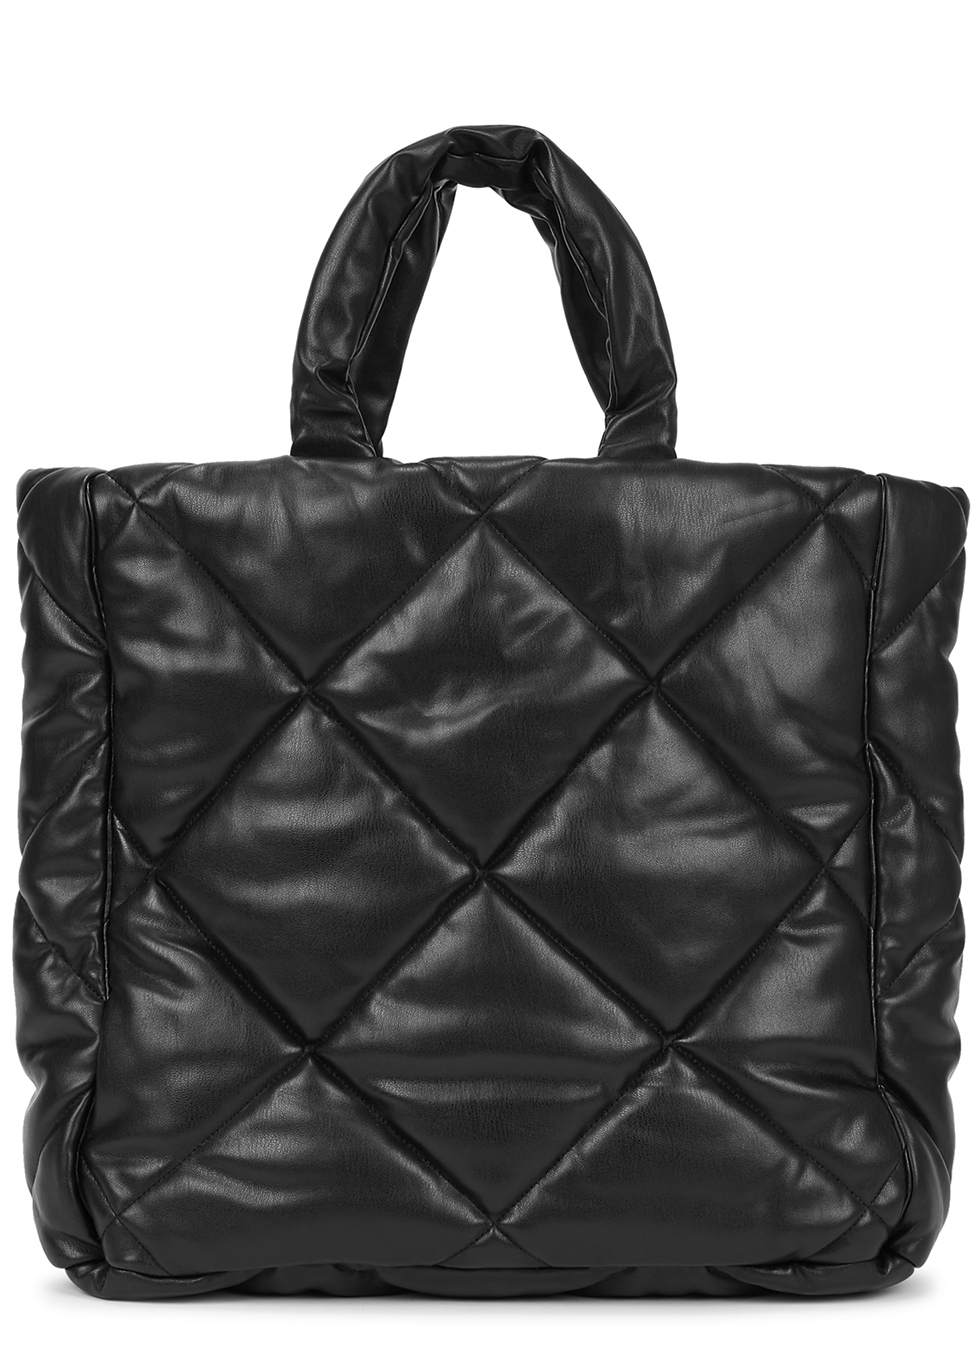 Assante quilted leather tote